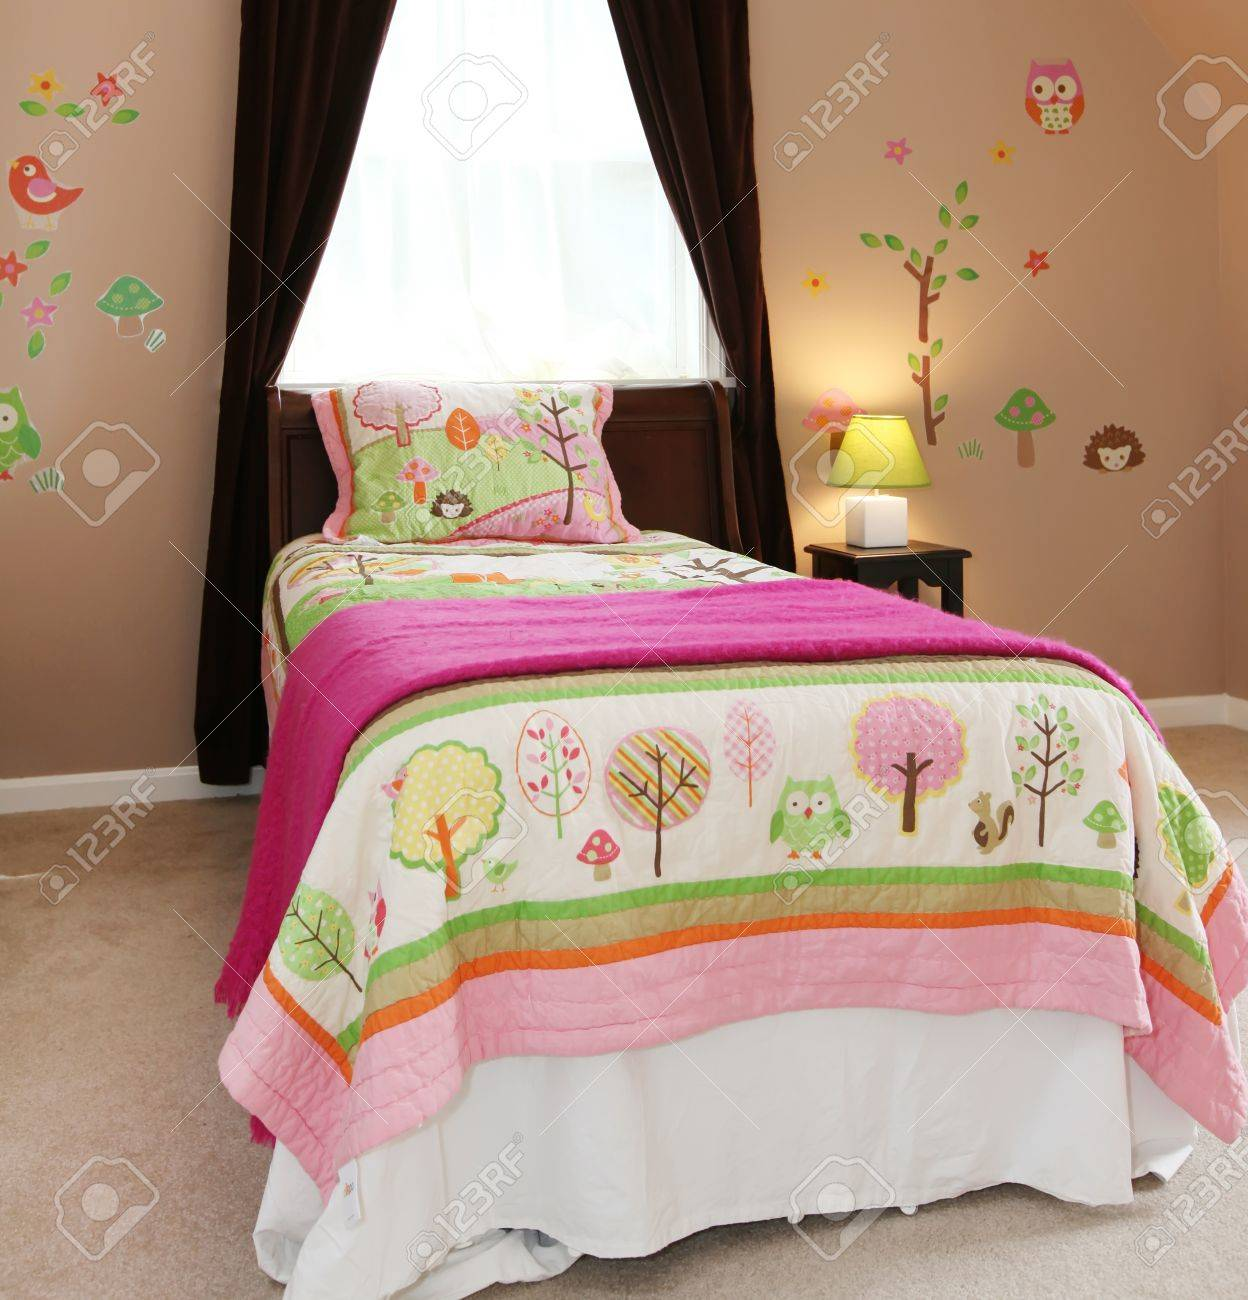 Baby girl kids bedroom interior with pink bed and brown walls. Stock Photo - 13888918